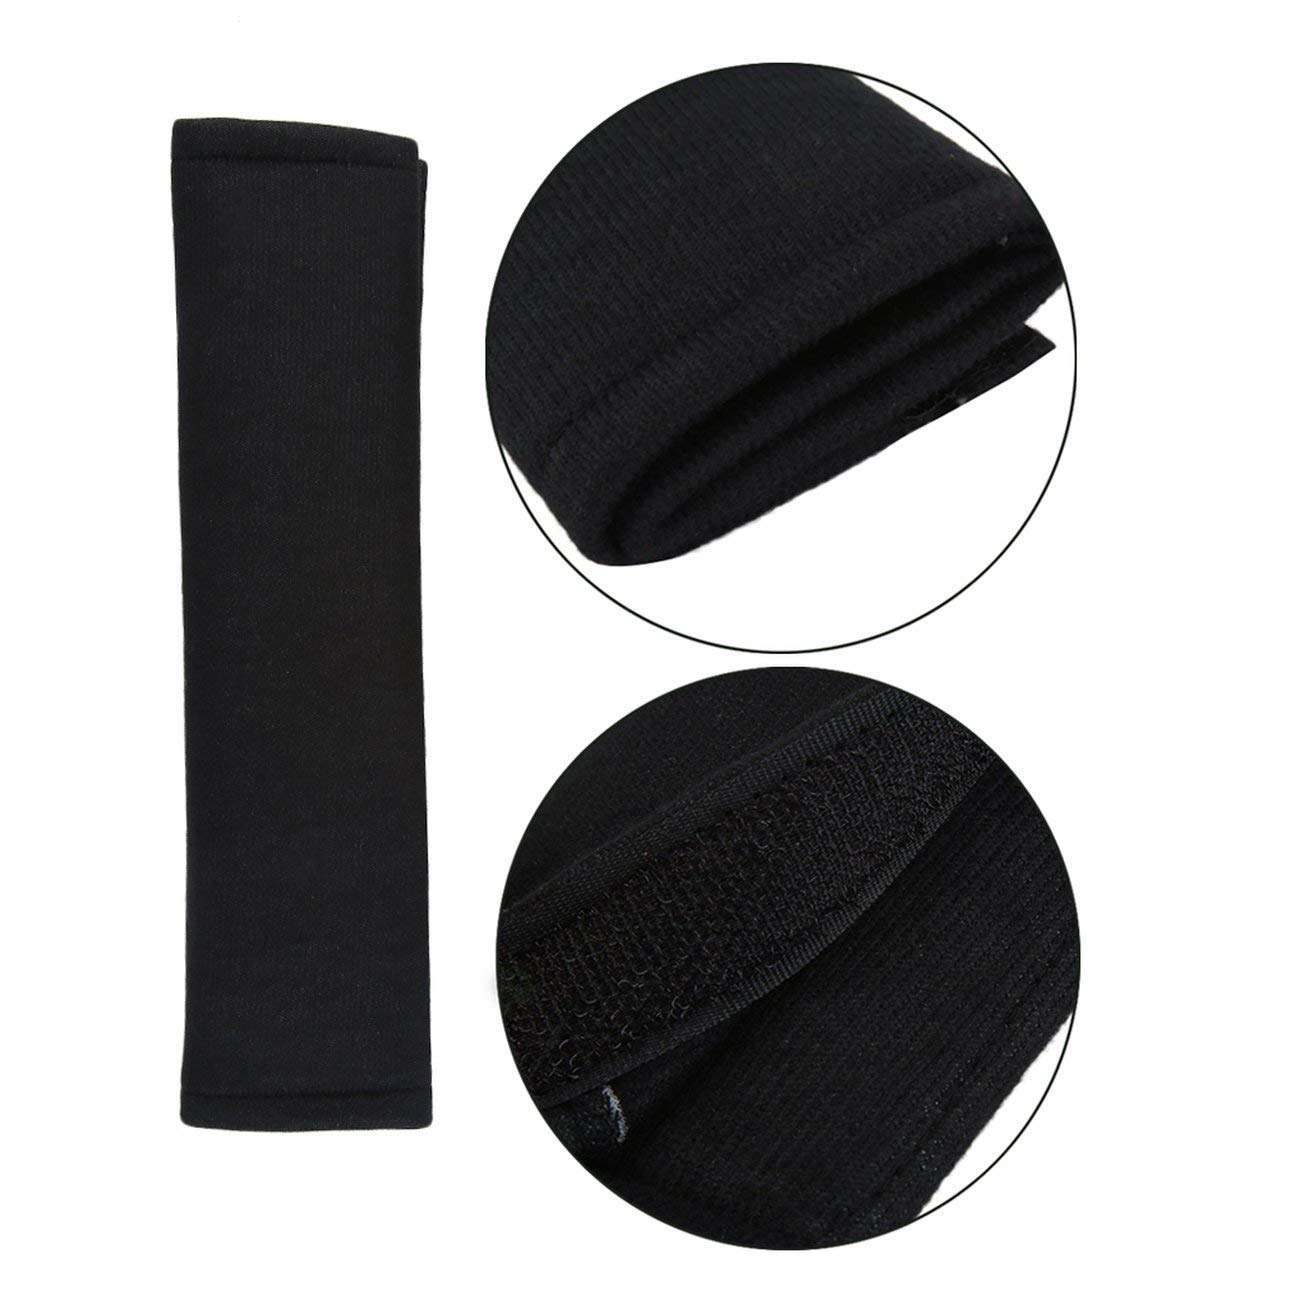 Liobaba 2Pcs Car Comfortable Safety Seat Belt Shoulder Pads Cover Soft Cushion